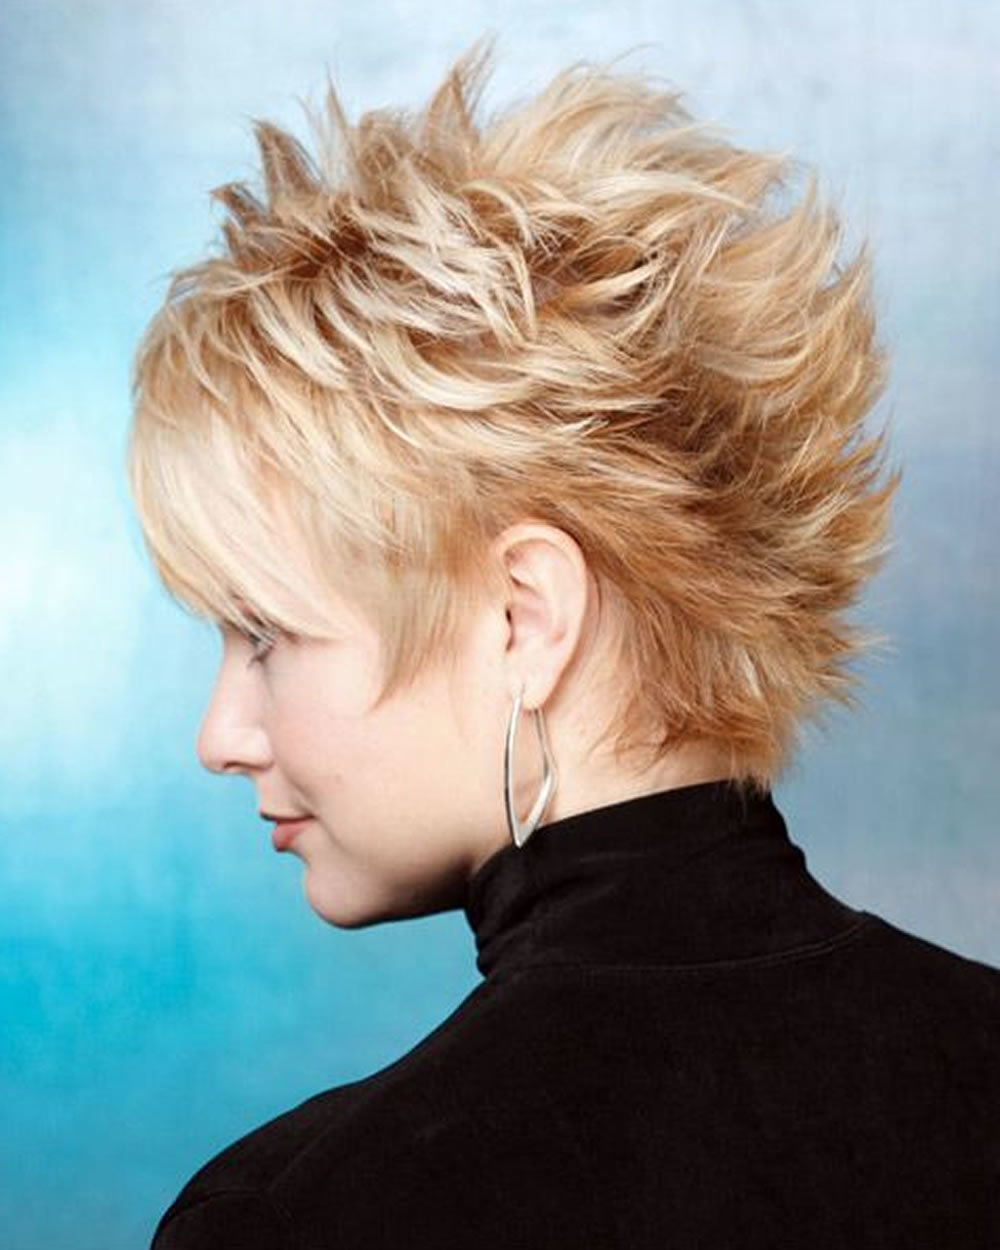 The hottest 27 different colors short spiky haircuts & hairstyles ...